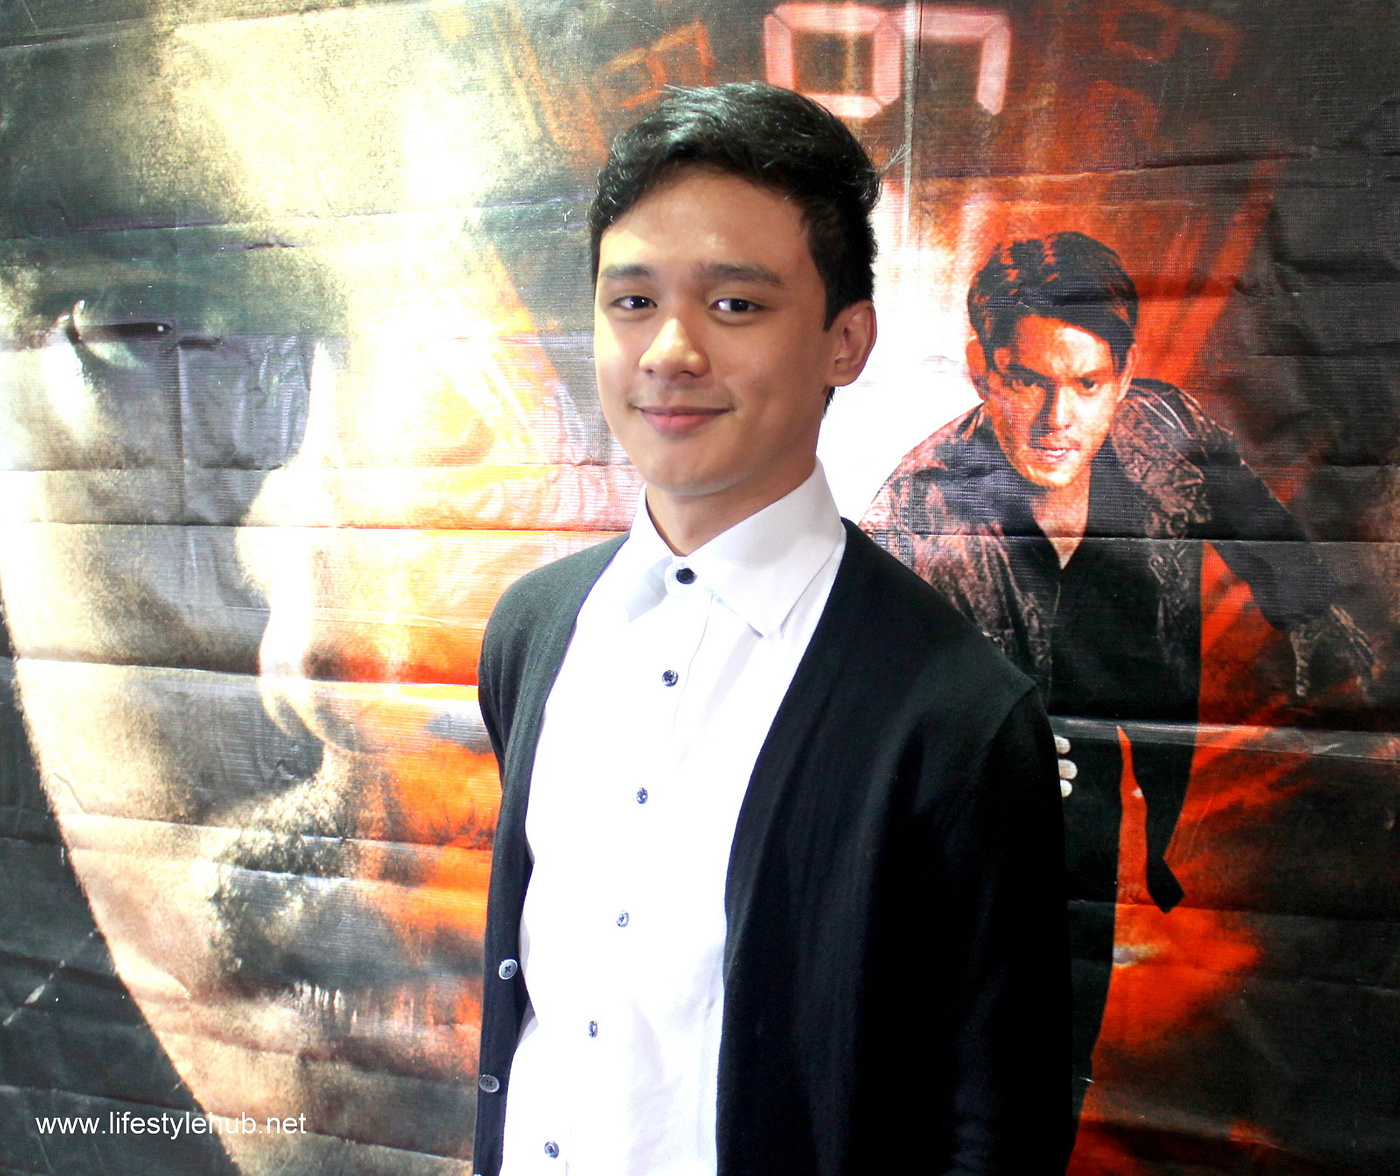 overtime movie premiere photos